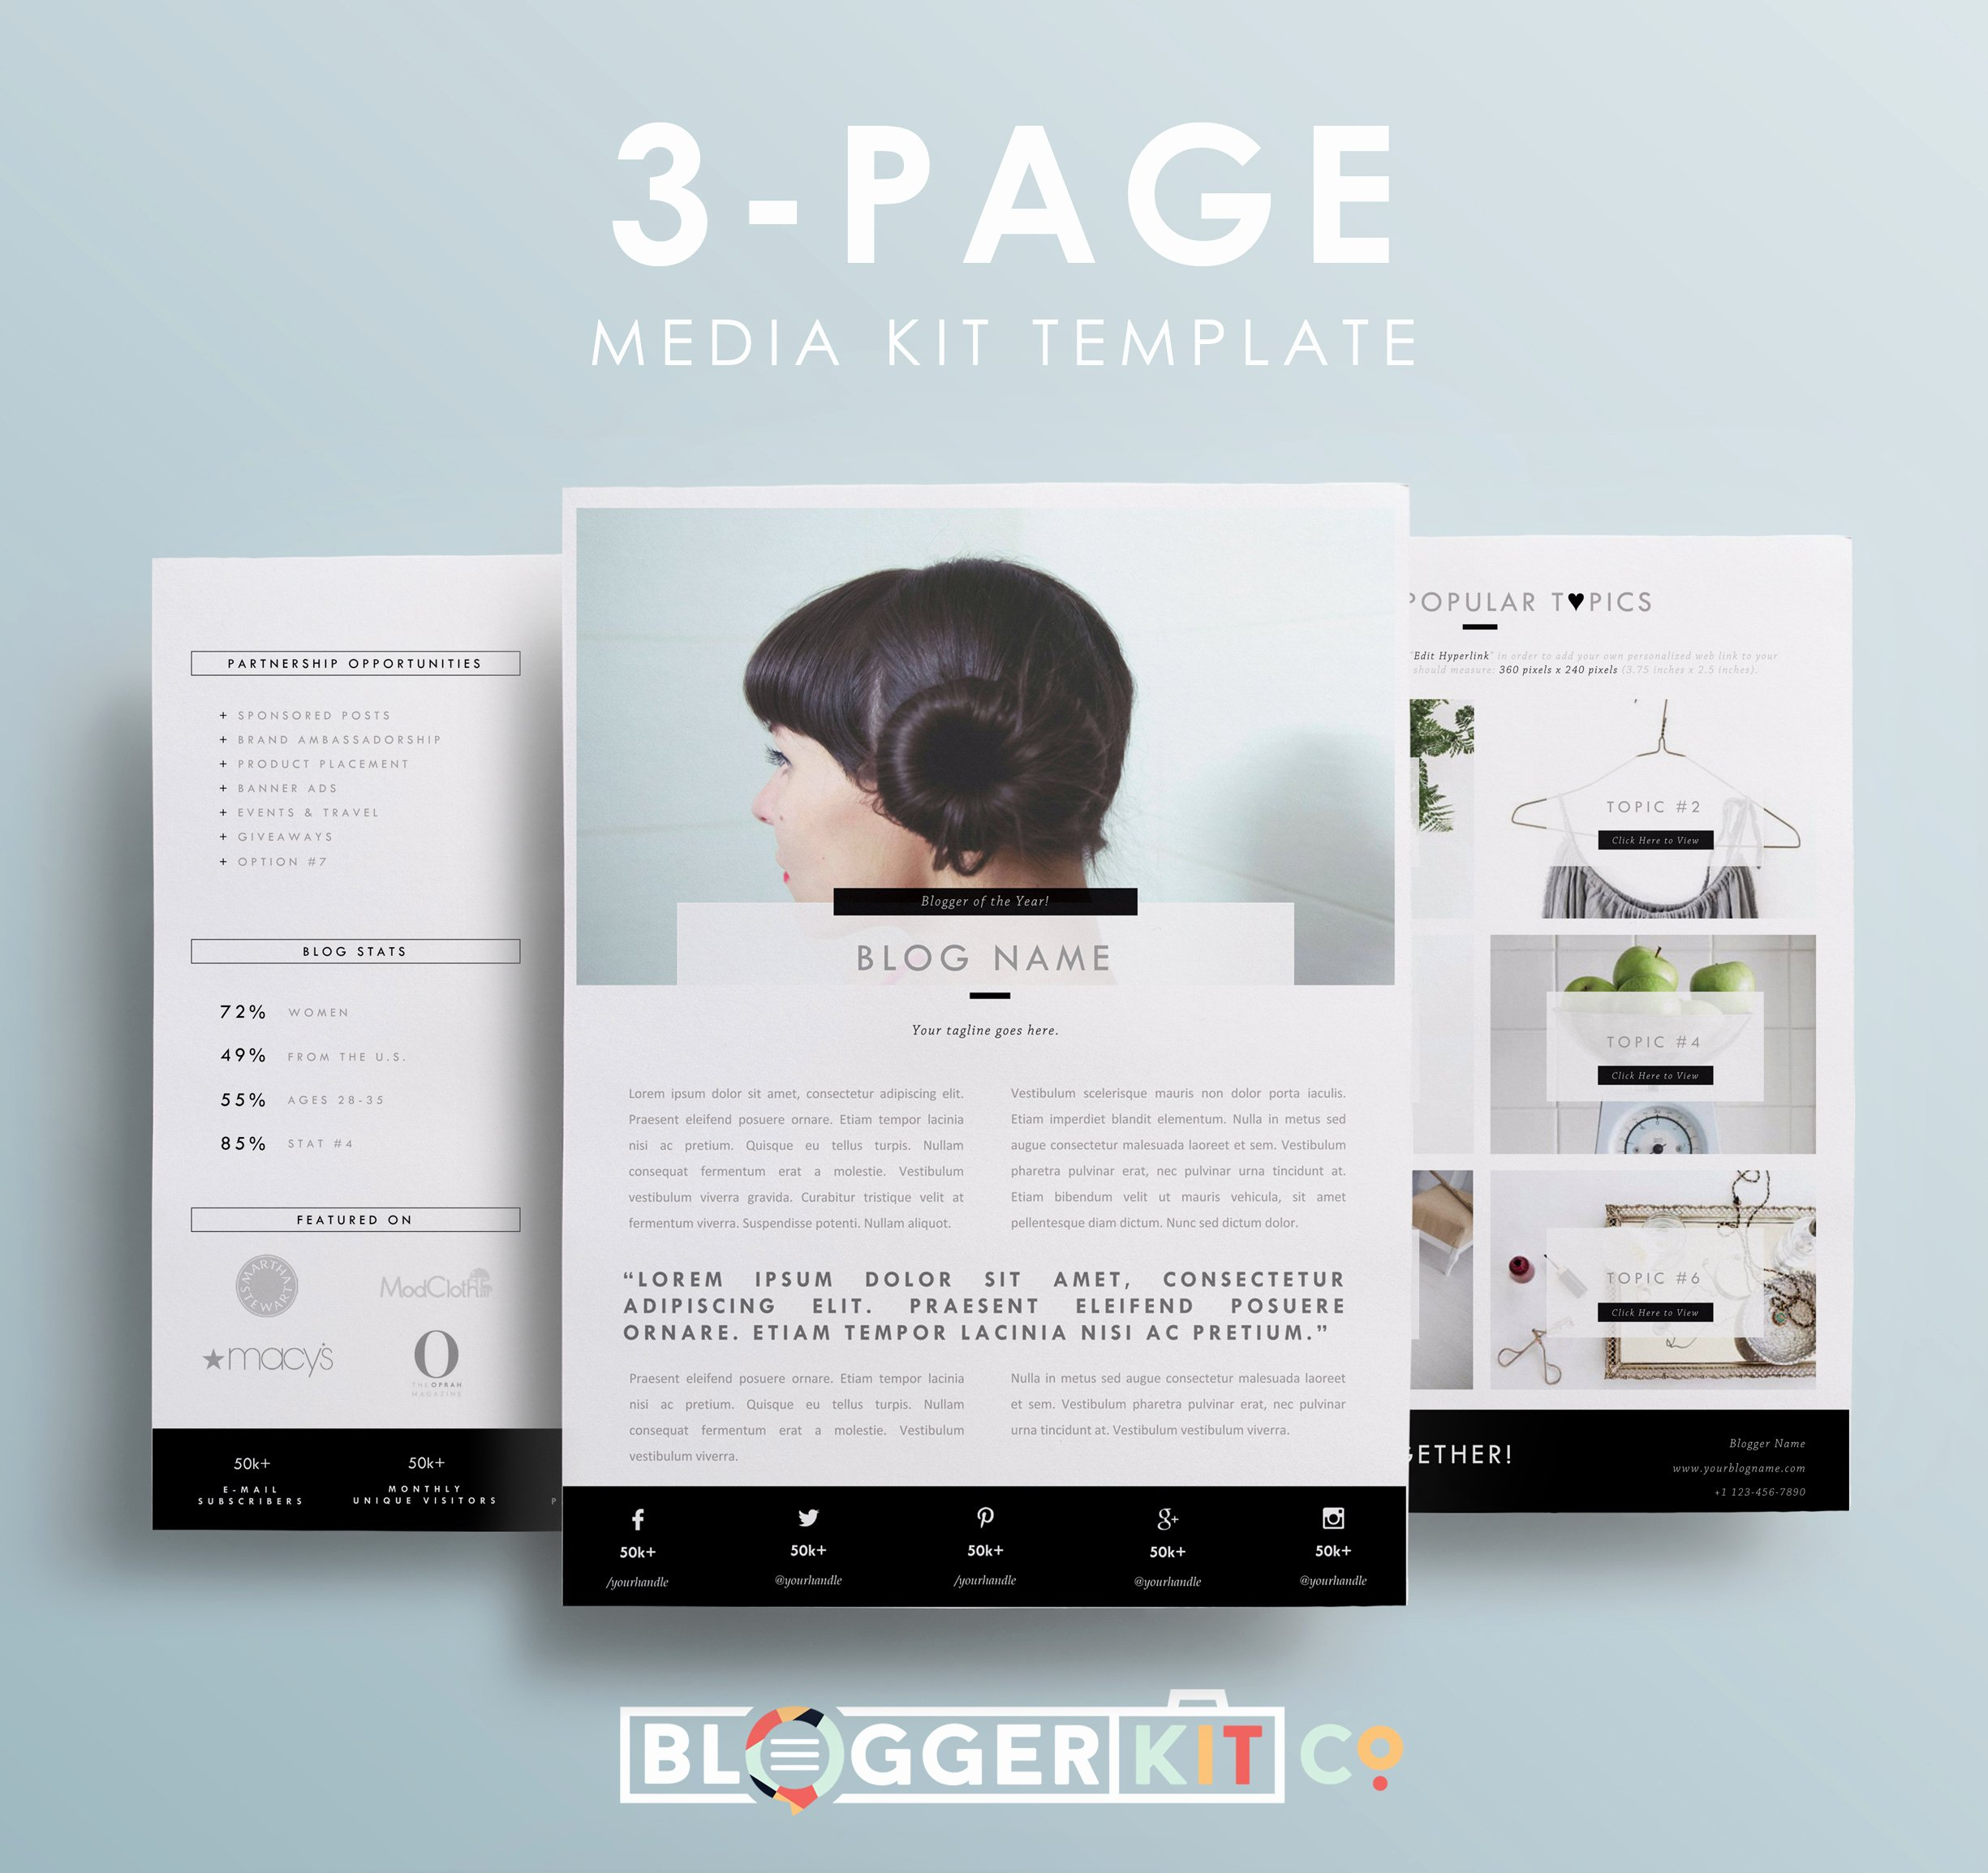 Free Press Kit Template Best Of My Darling Clementine 3 Page Media Kit Template